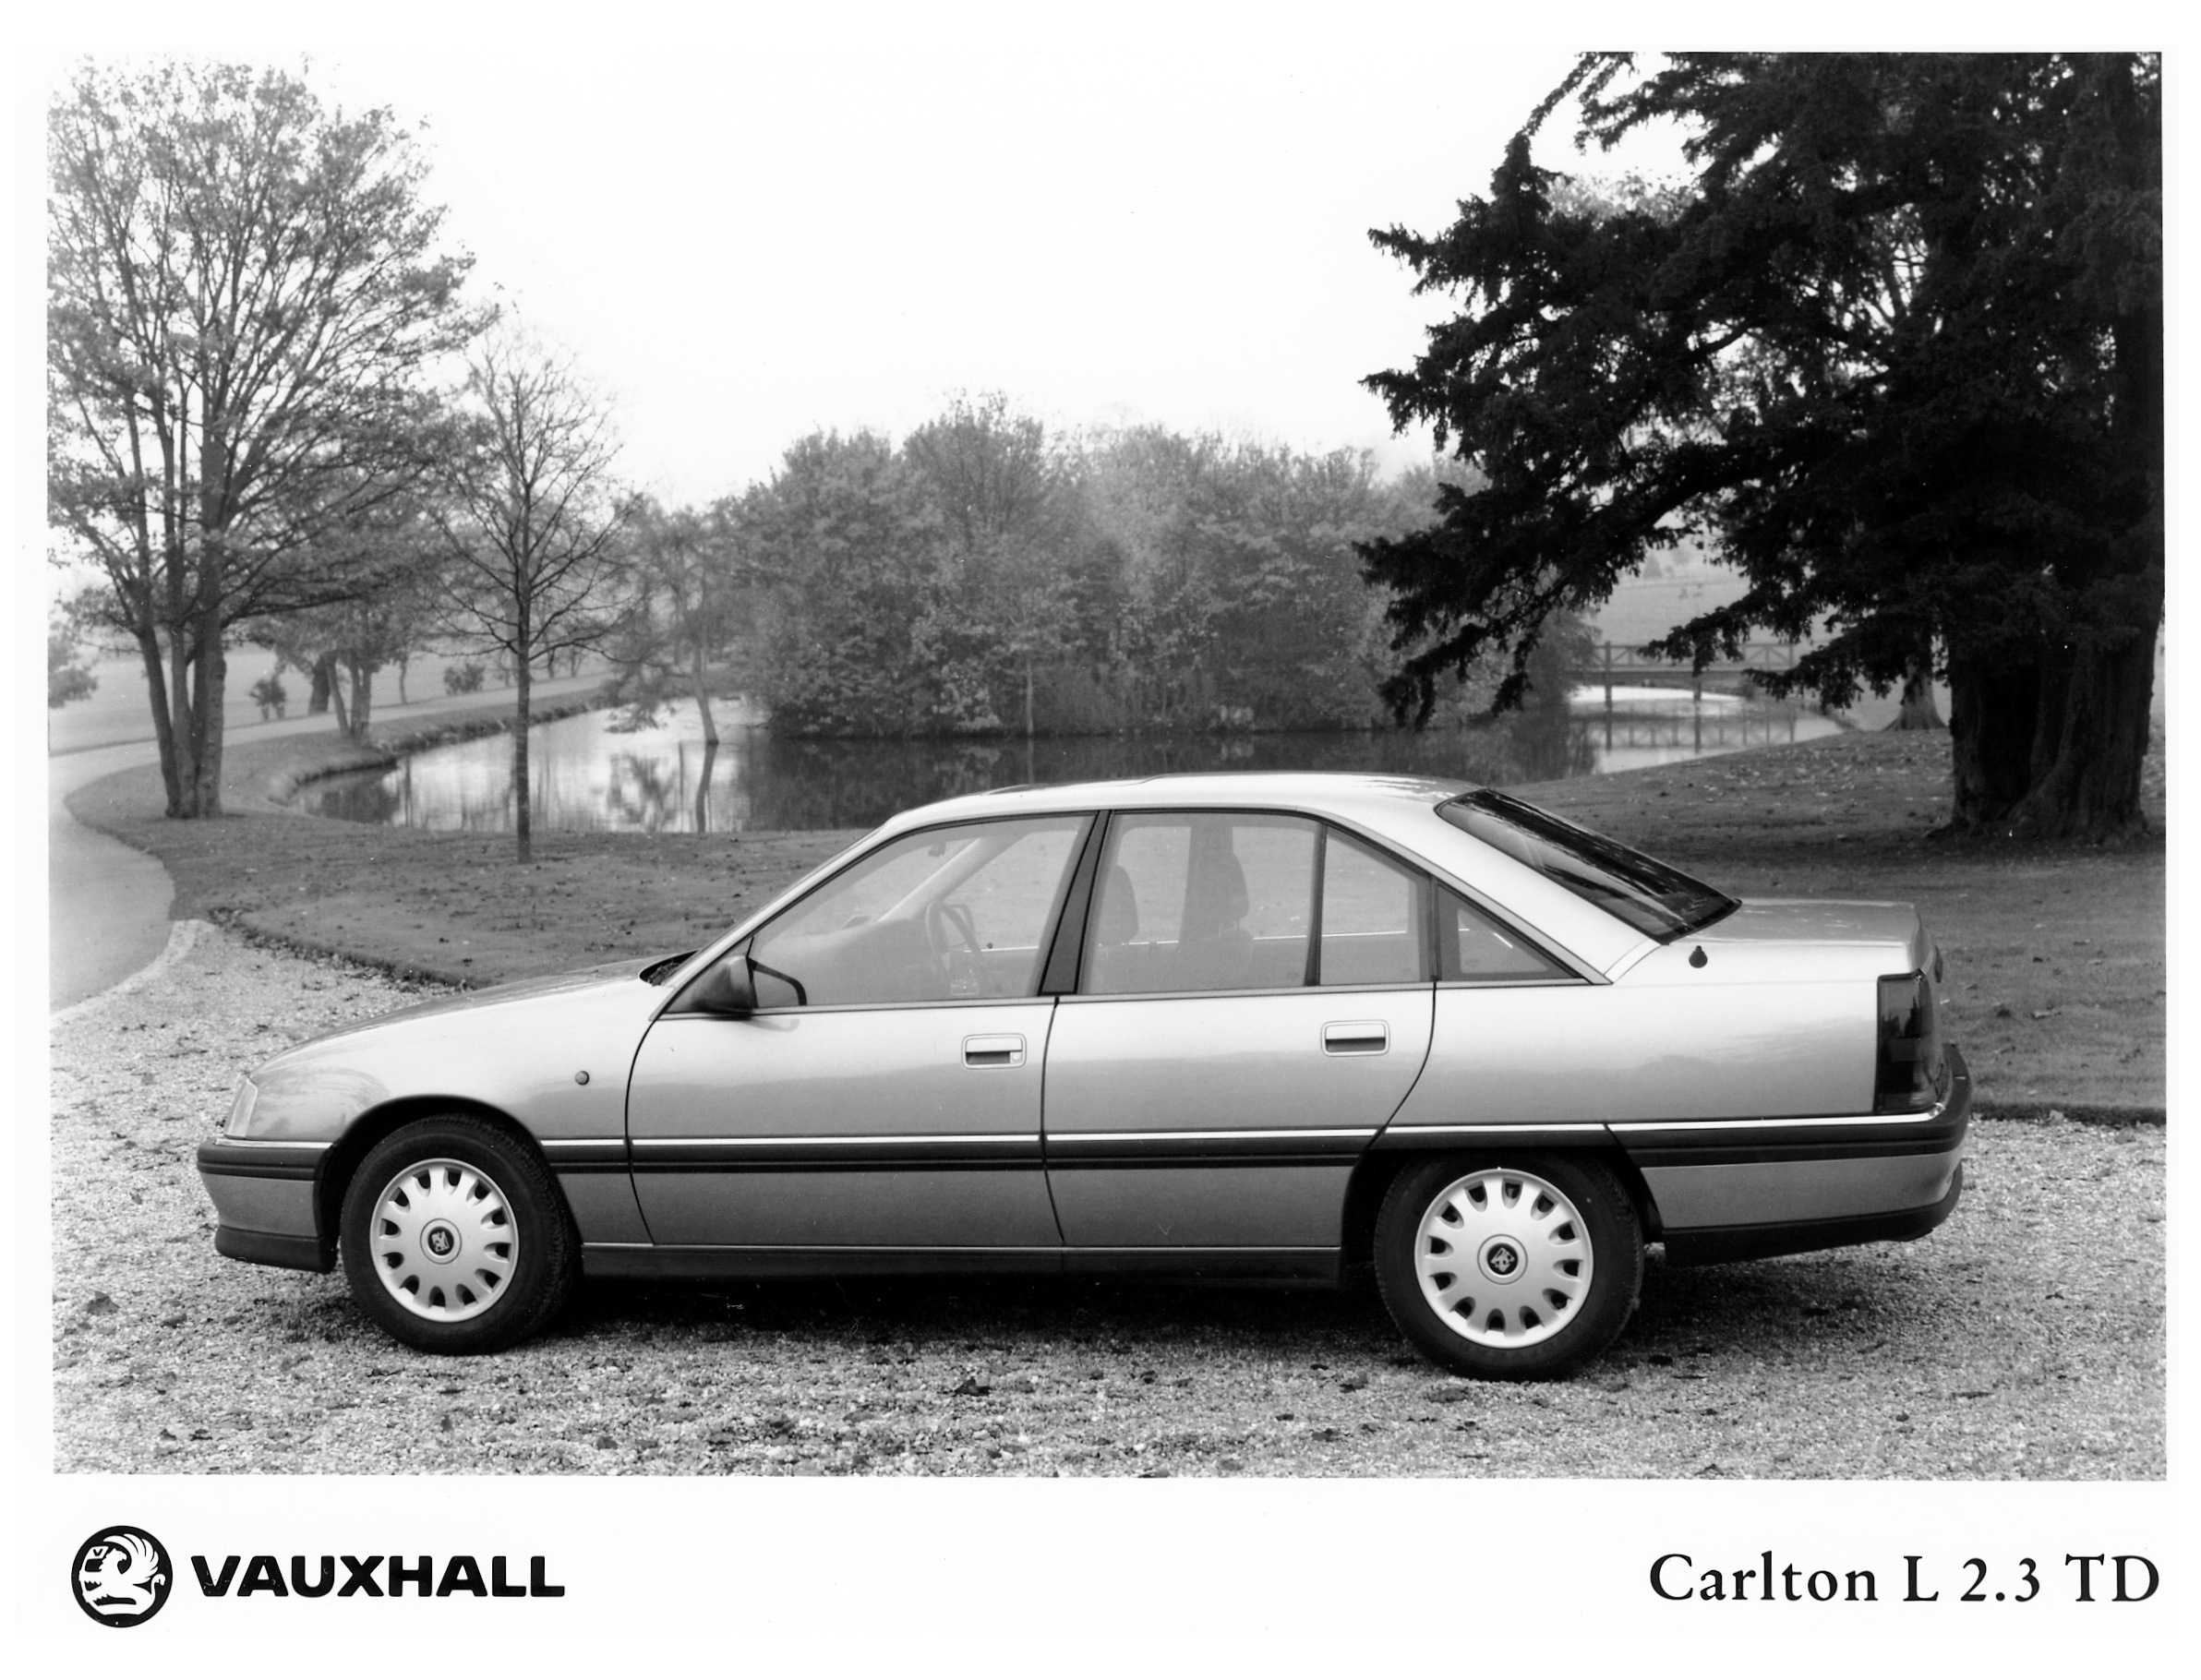 22.vauxhallcarltonl2.3tdsaloon Breathtaking Lotus Carlton for Sale Uk Cars Trend